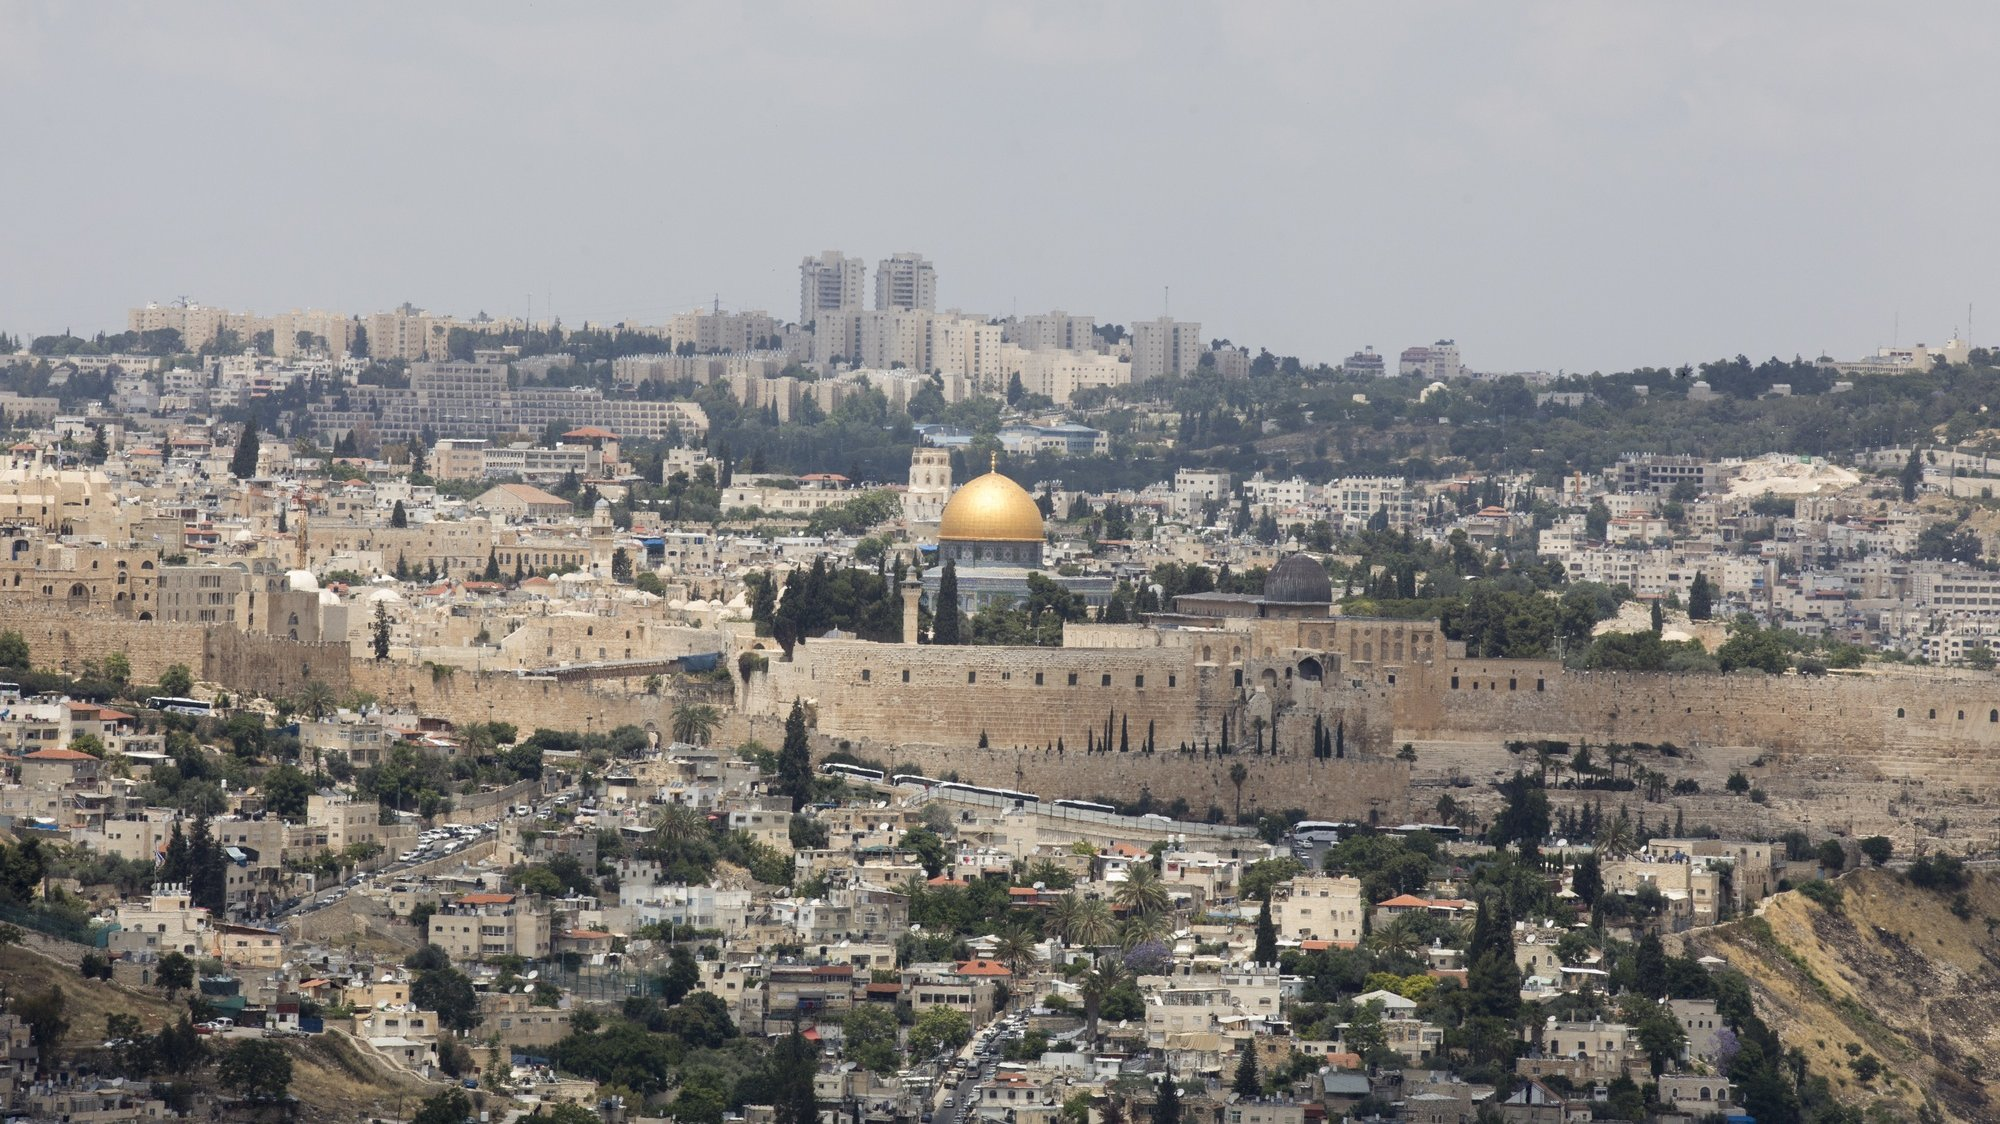 epa06735287 A general view of the Jerusalem old city as seen from Armon Hanatziv neighborhood next to the locations of the US embassy, ahead of events marking the embassy inauguration in Jerusalem in Jerusalem, 14 May 2018. US President Donald J. Trump's administration will officially transfer the ambassador's offices to the consulate building and temporarily use it as the new US Embassy in Jerusalem as of 14 May 2018. Trump in December last year recognized Jerusalem as Israel's capital and announced an embassy move from Tel Aviv, prompting protests in the occupied Palestinian territories and several Muslim-majority countries.  EPA/ATEF SAFADI